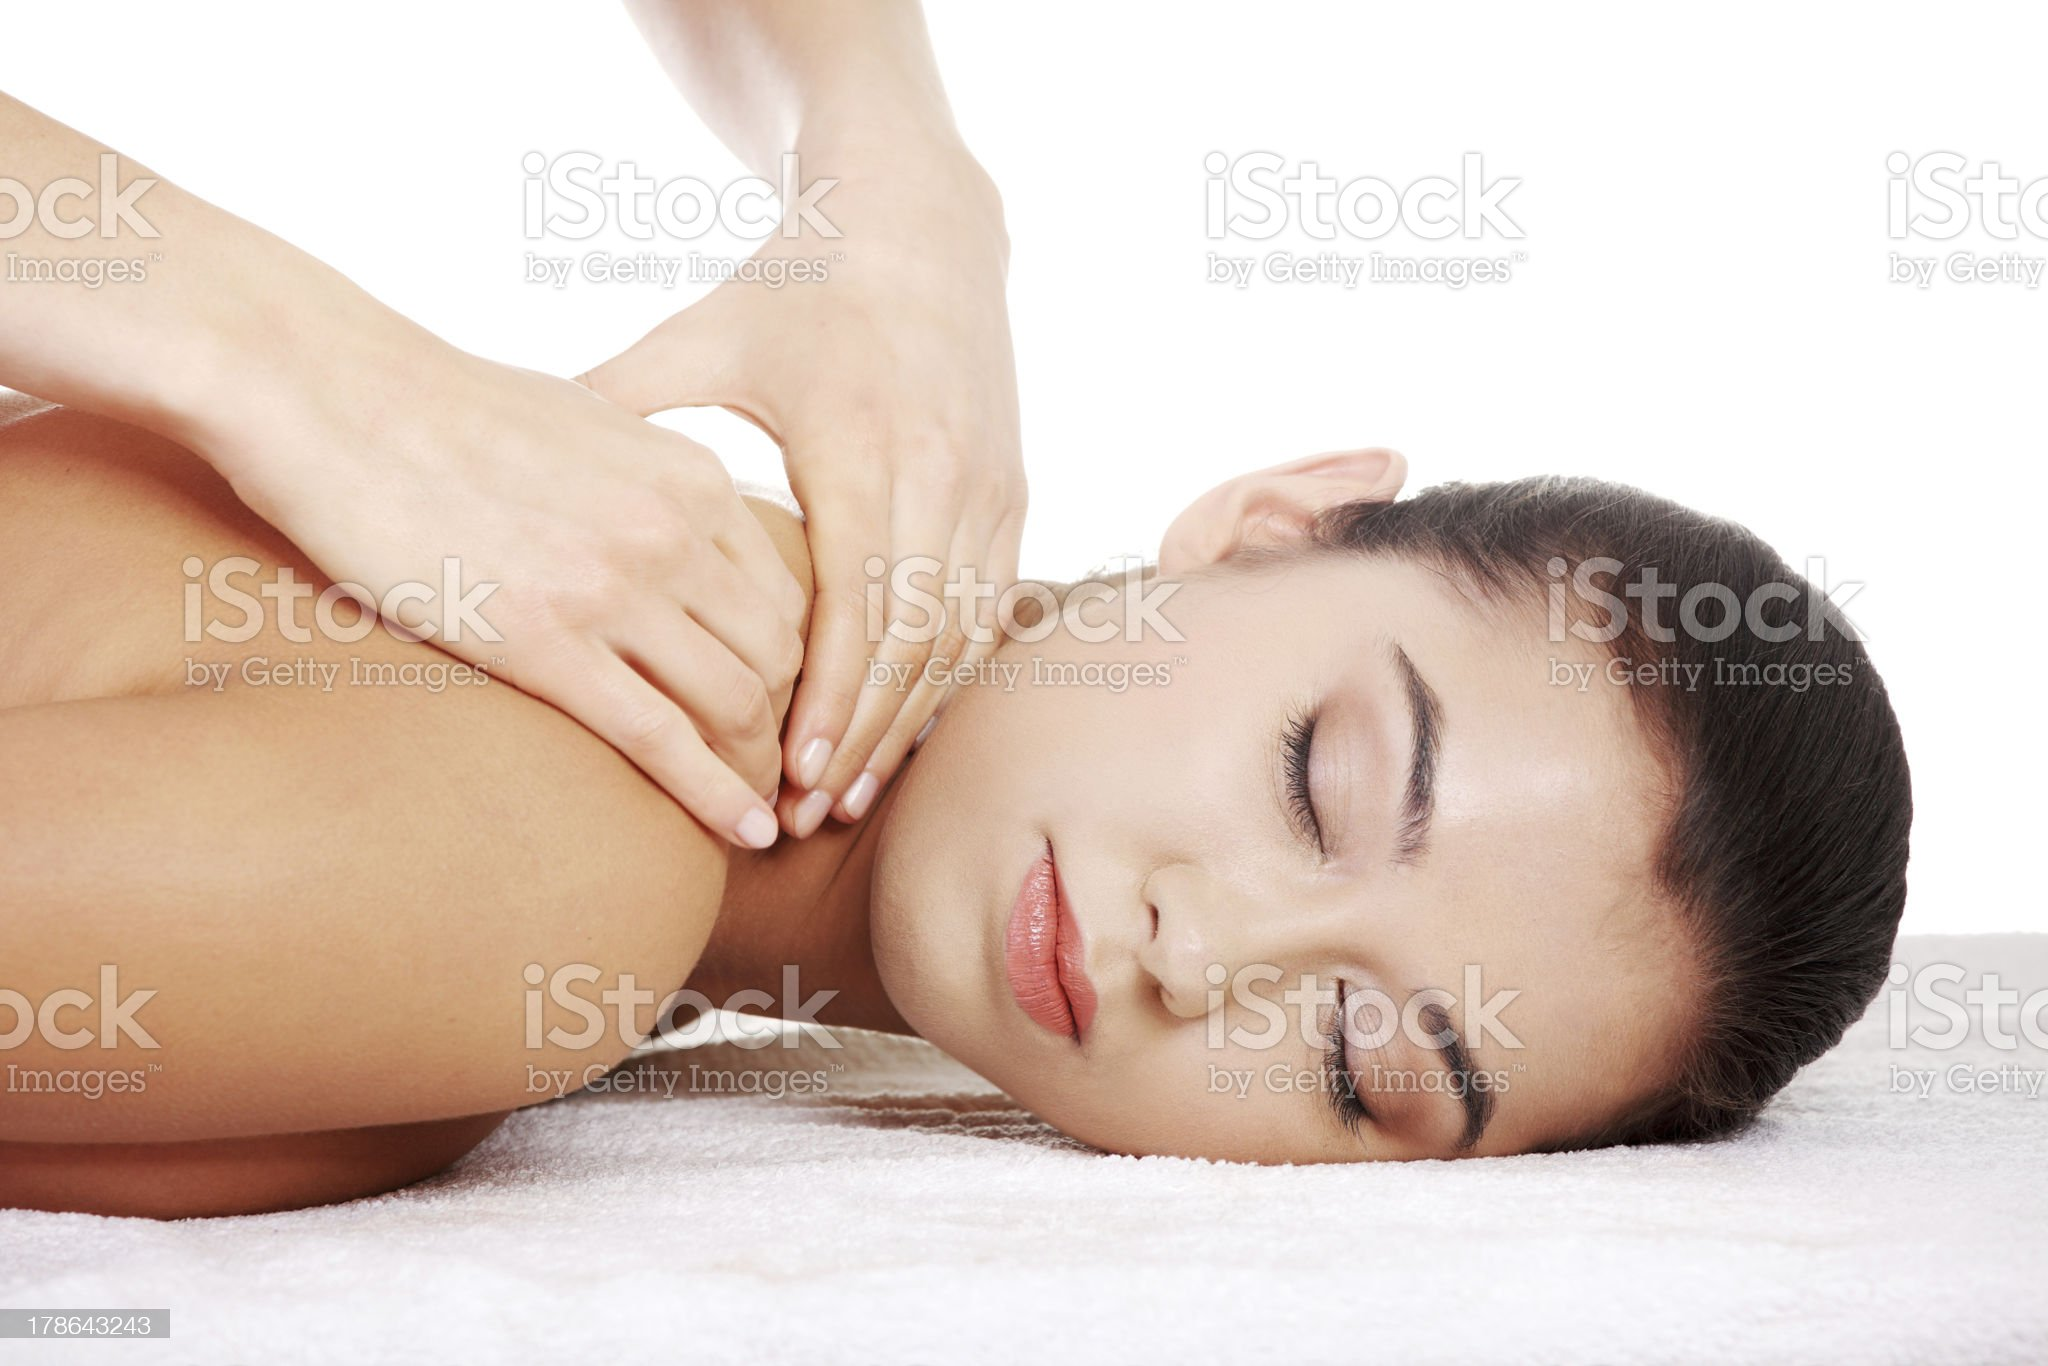 Young woman receiving back massage at spa royalty-free stock photo